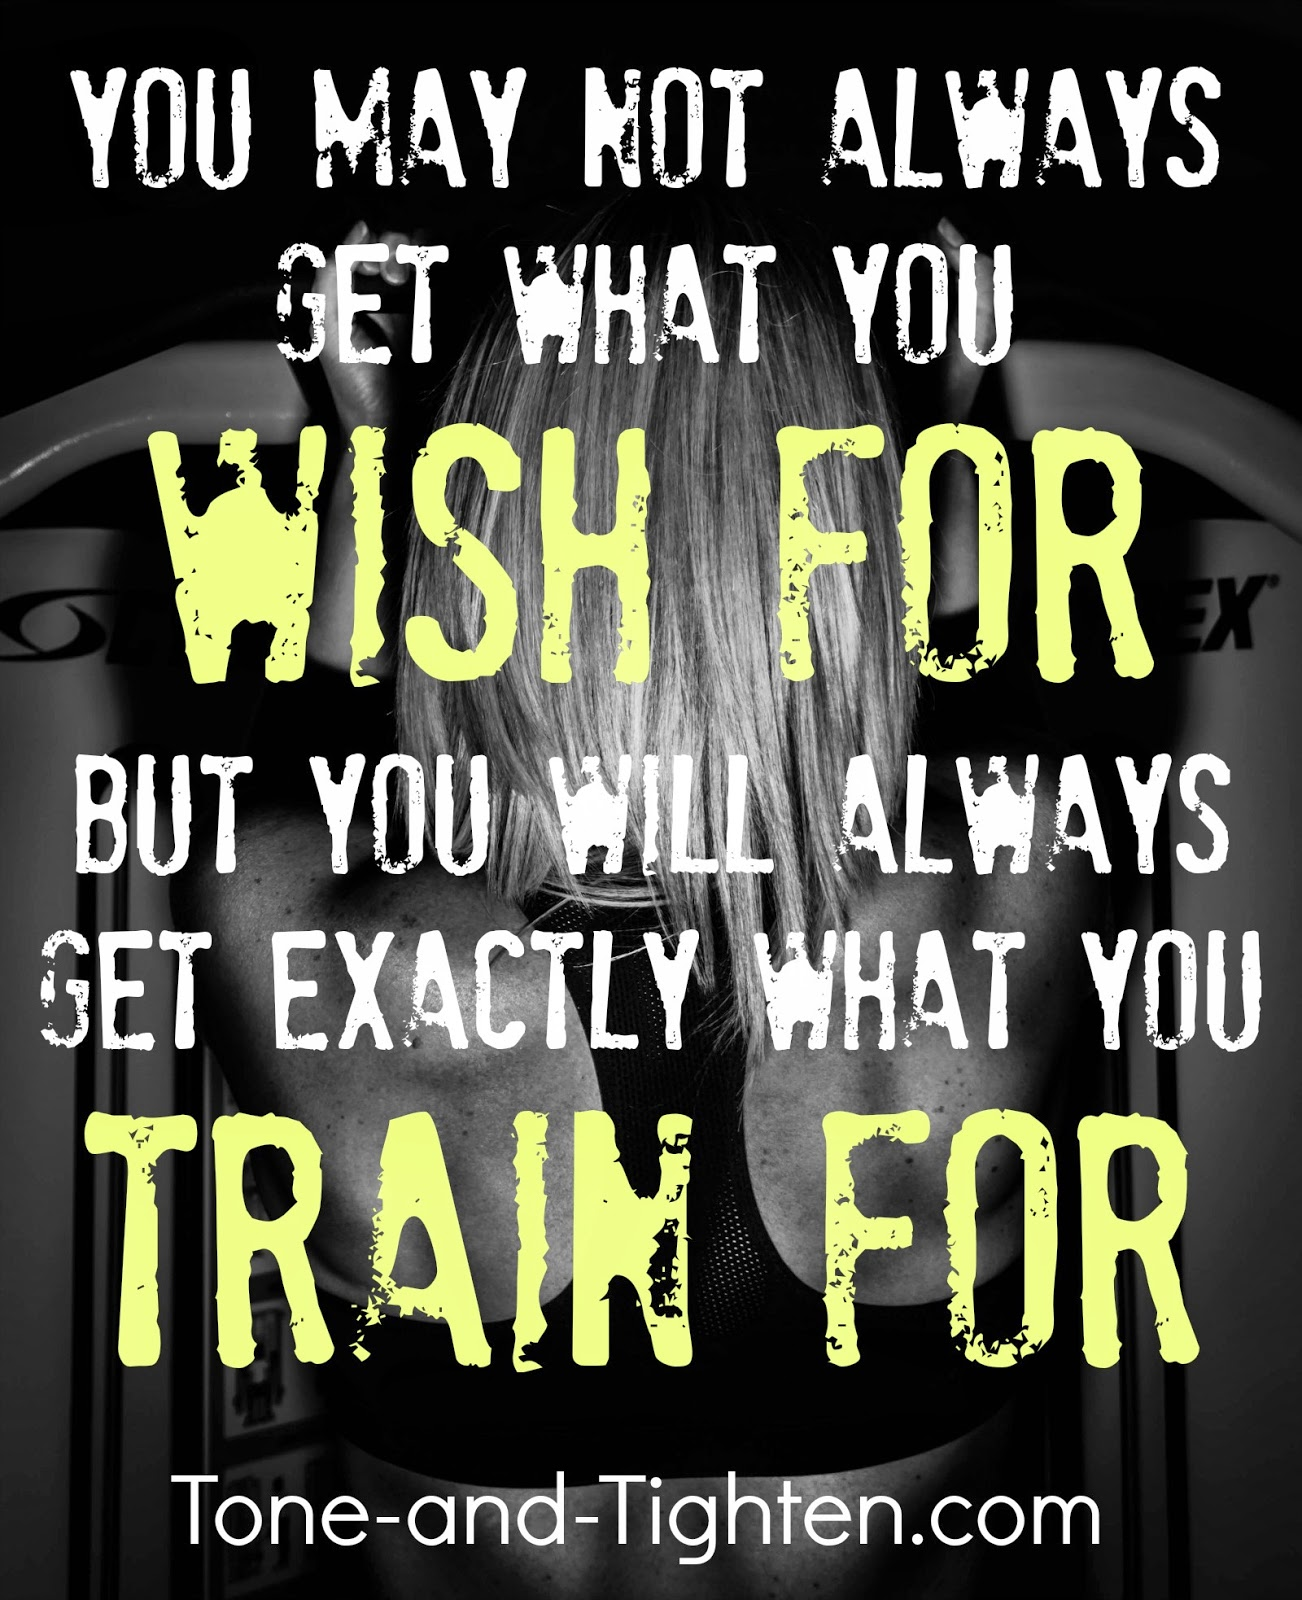 Health And Fitness: Health And Fitness Quotes. QuotesGram